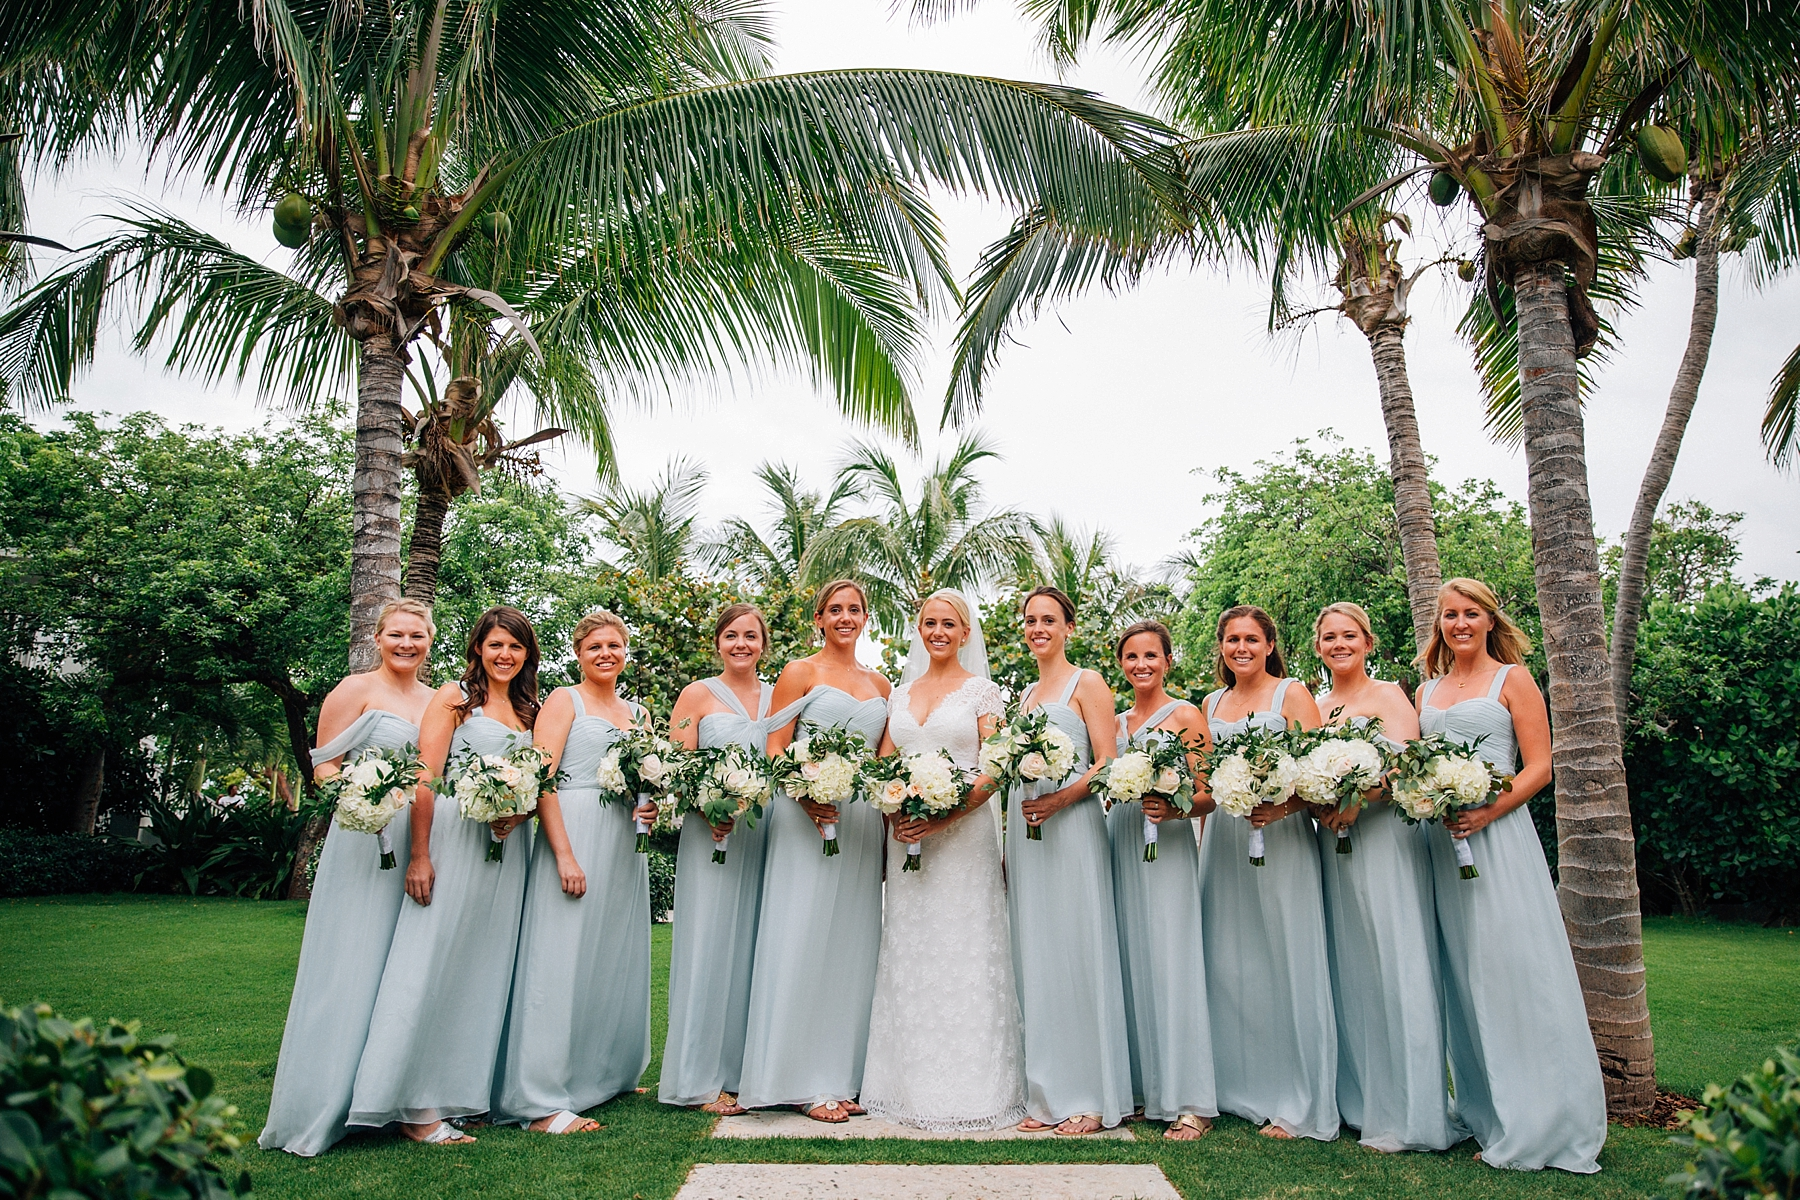 briland-wedding-photographer-harbour-island-bahamas_0012.jpg